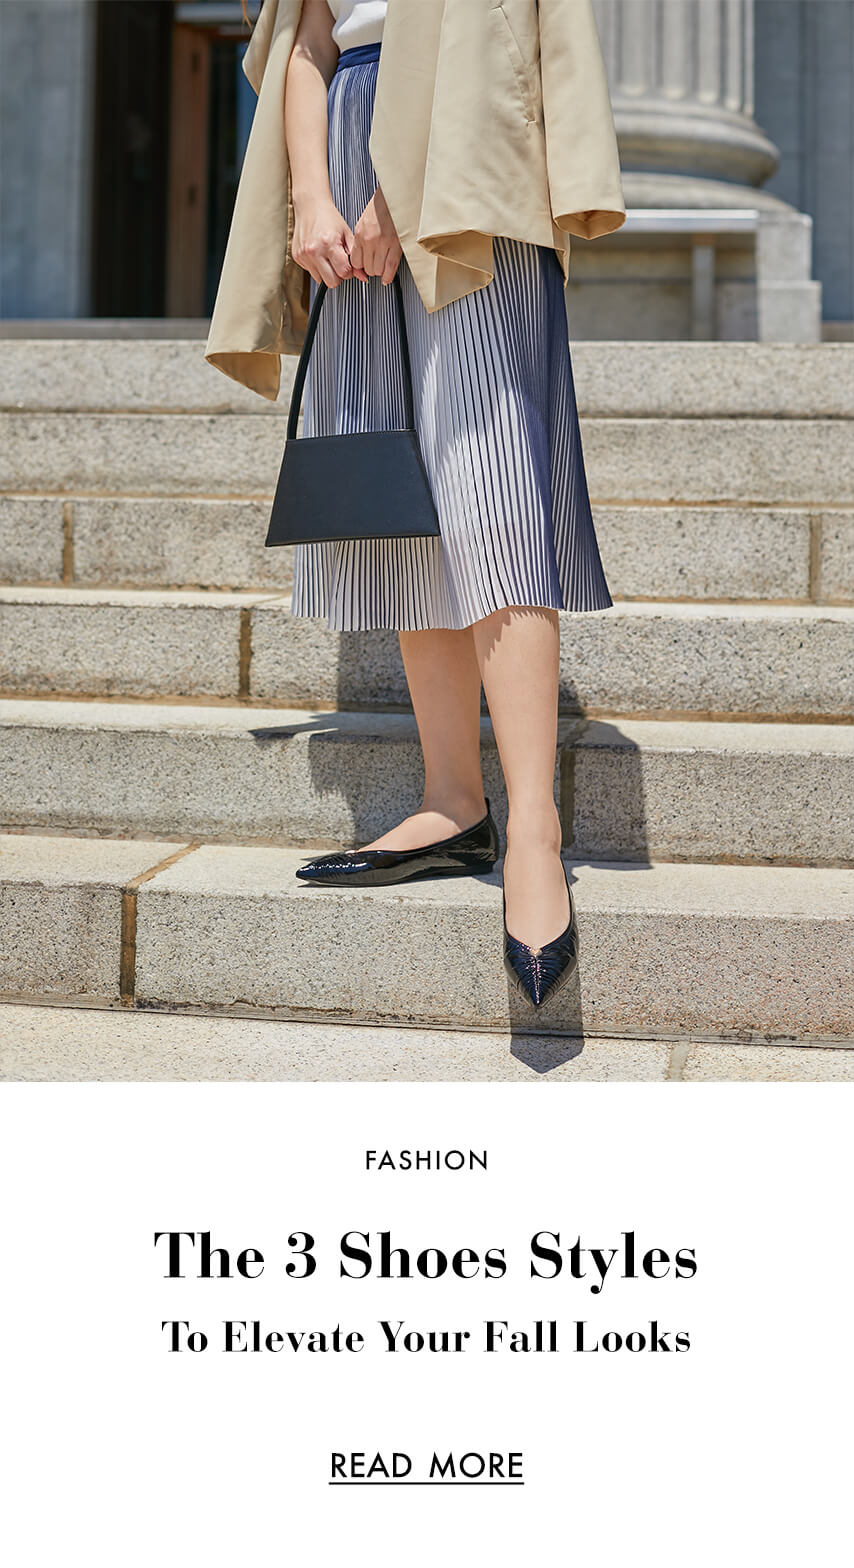 The 3 Shoes Styles To  Elevate Your Fall Looks